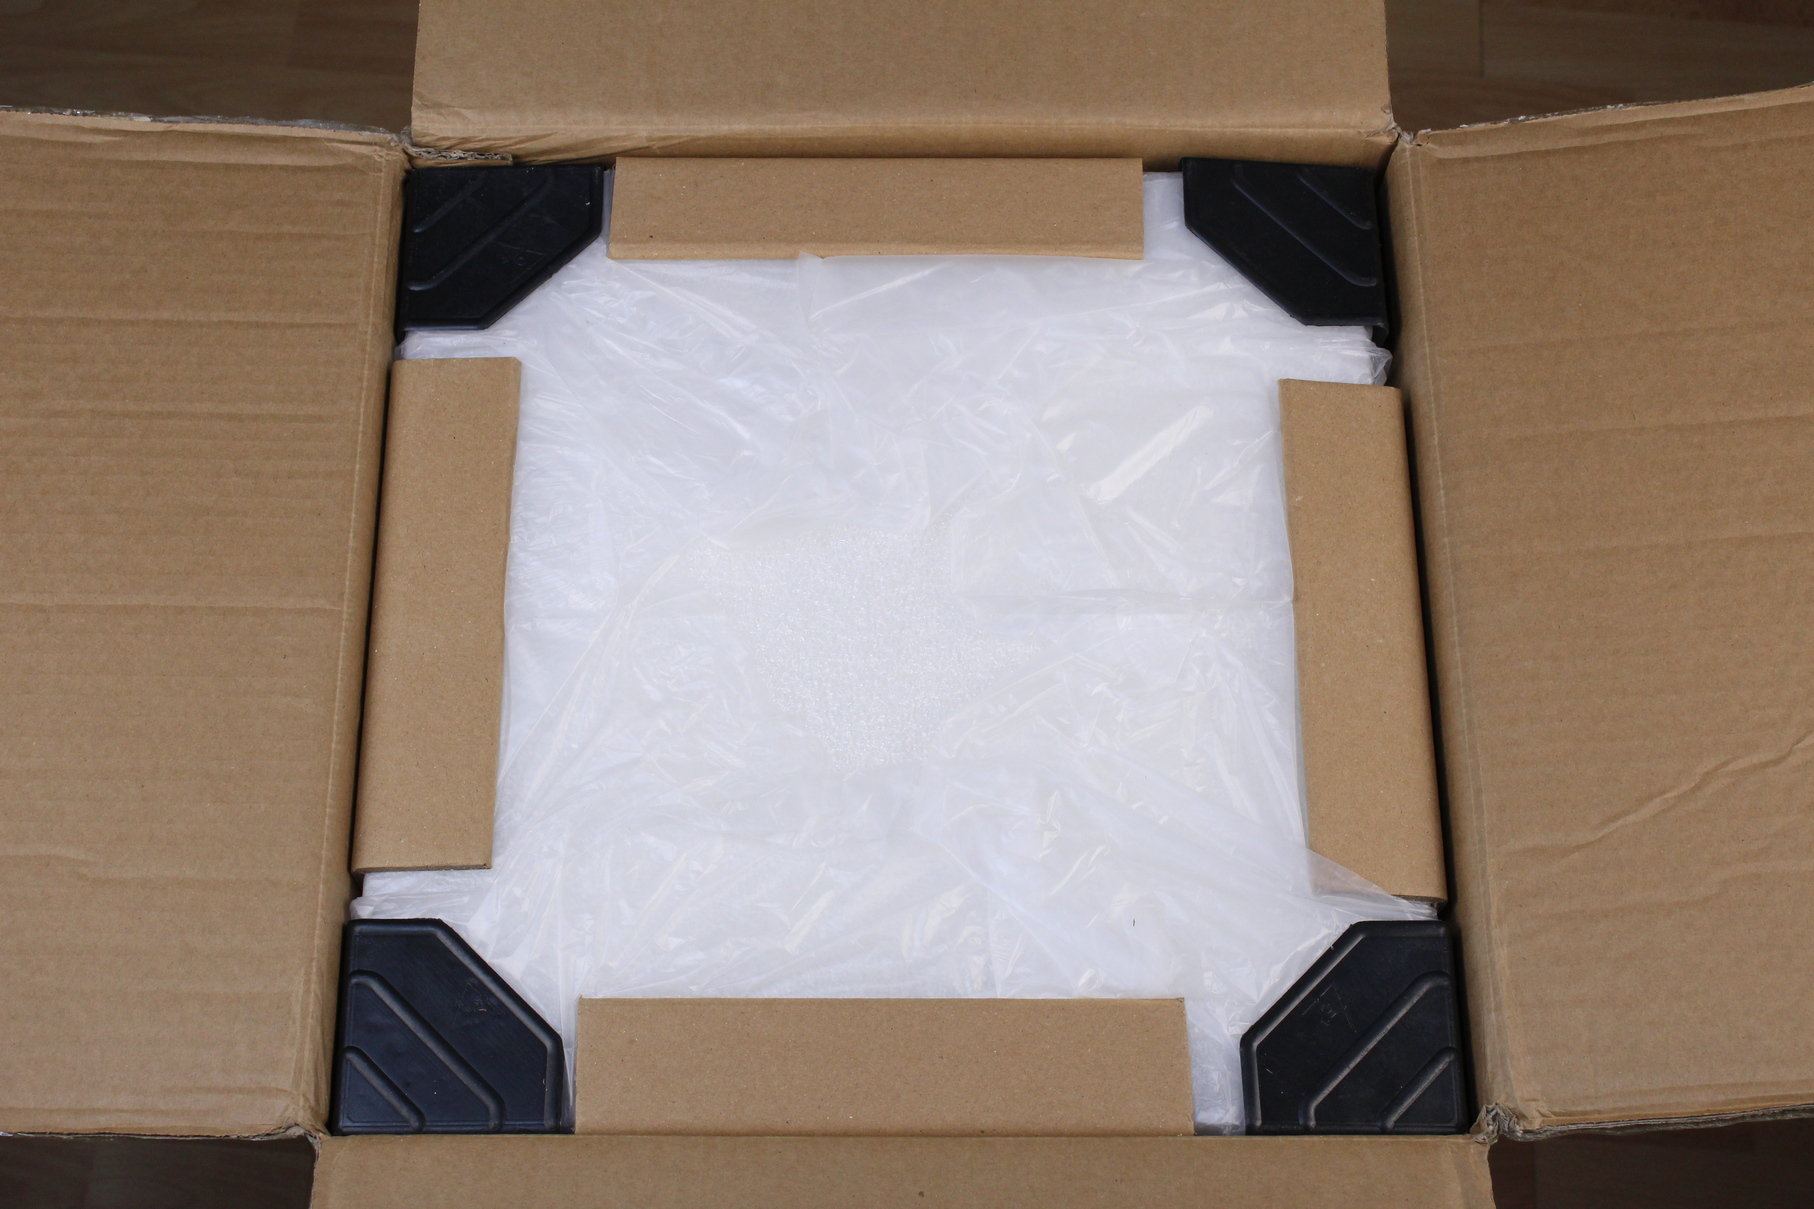 Anycubic-Photon-Mono-X-Review-Packaging-5